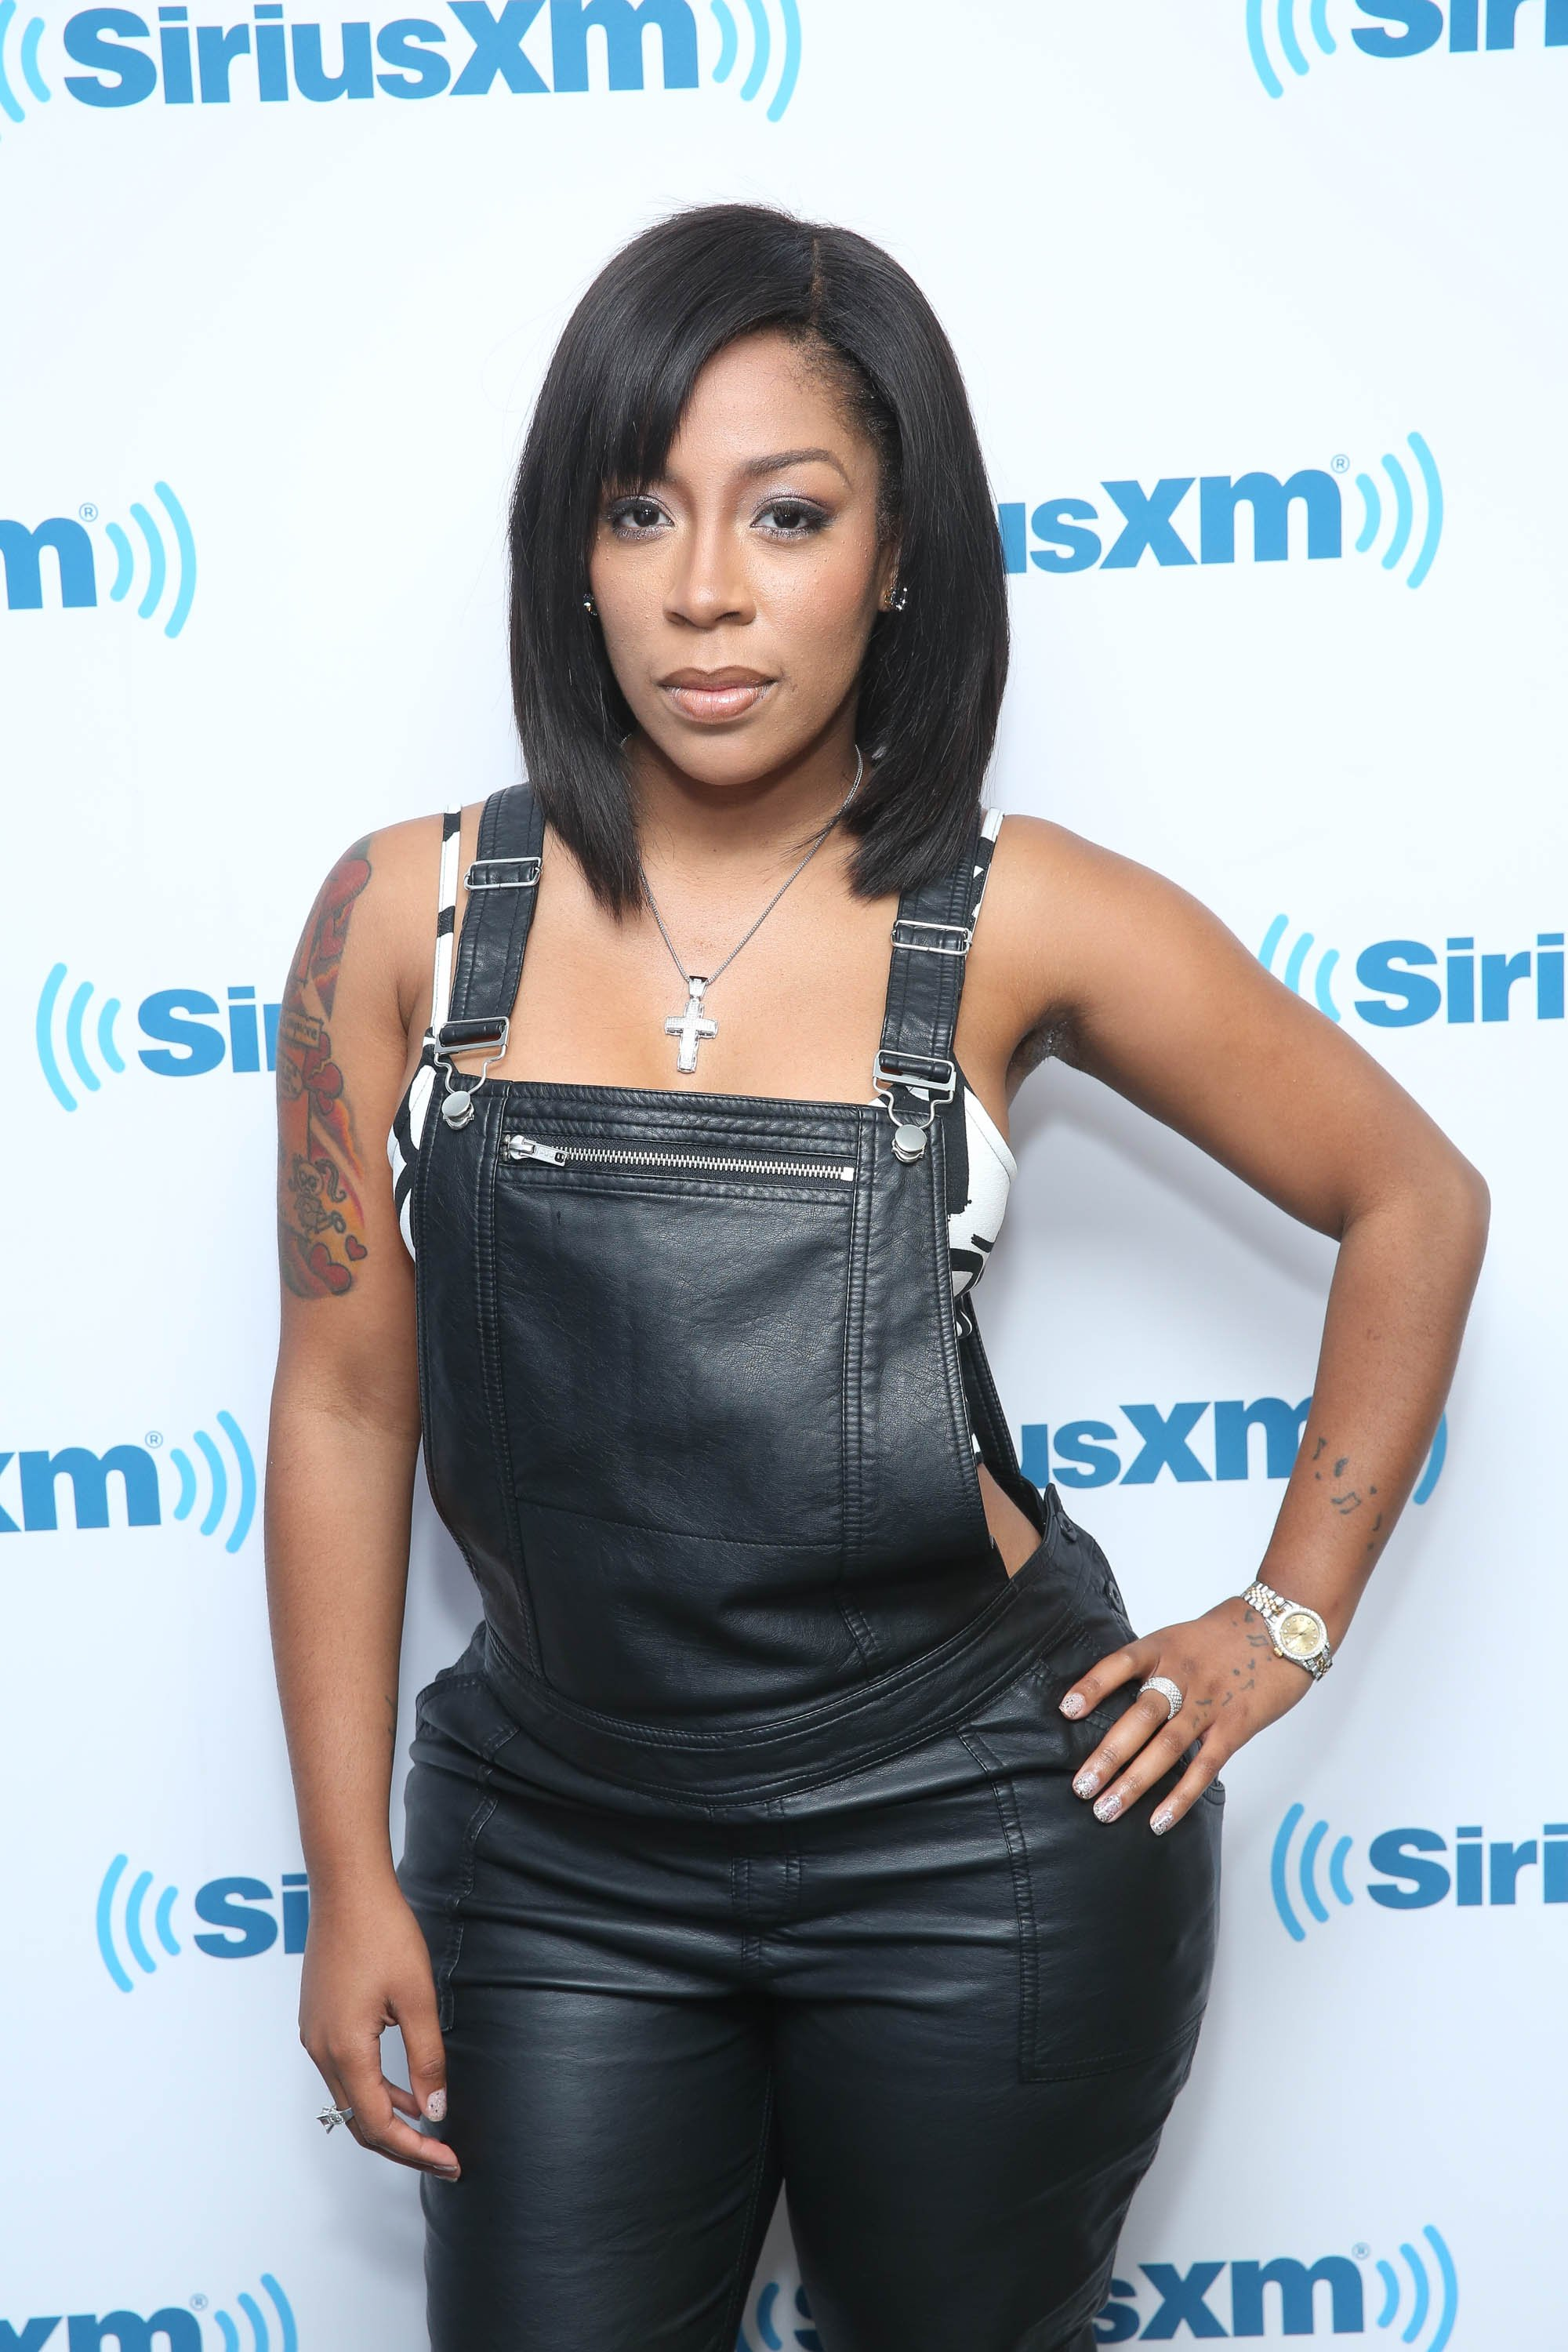 K. Michelle visits SiriusXM Studios on Sept. 18, 2014 in New York City | Photo: Getty Images